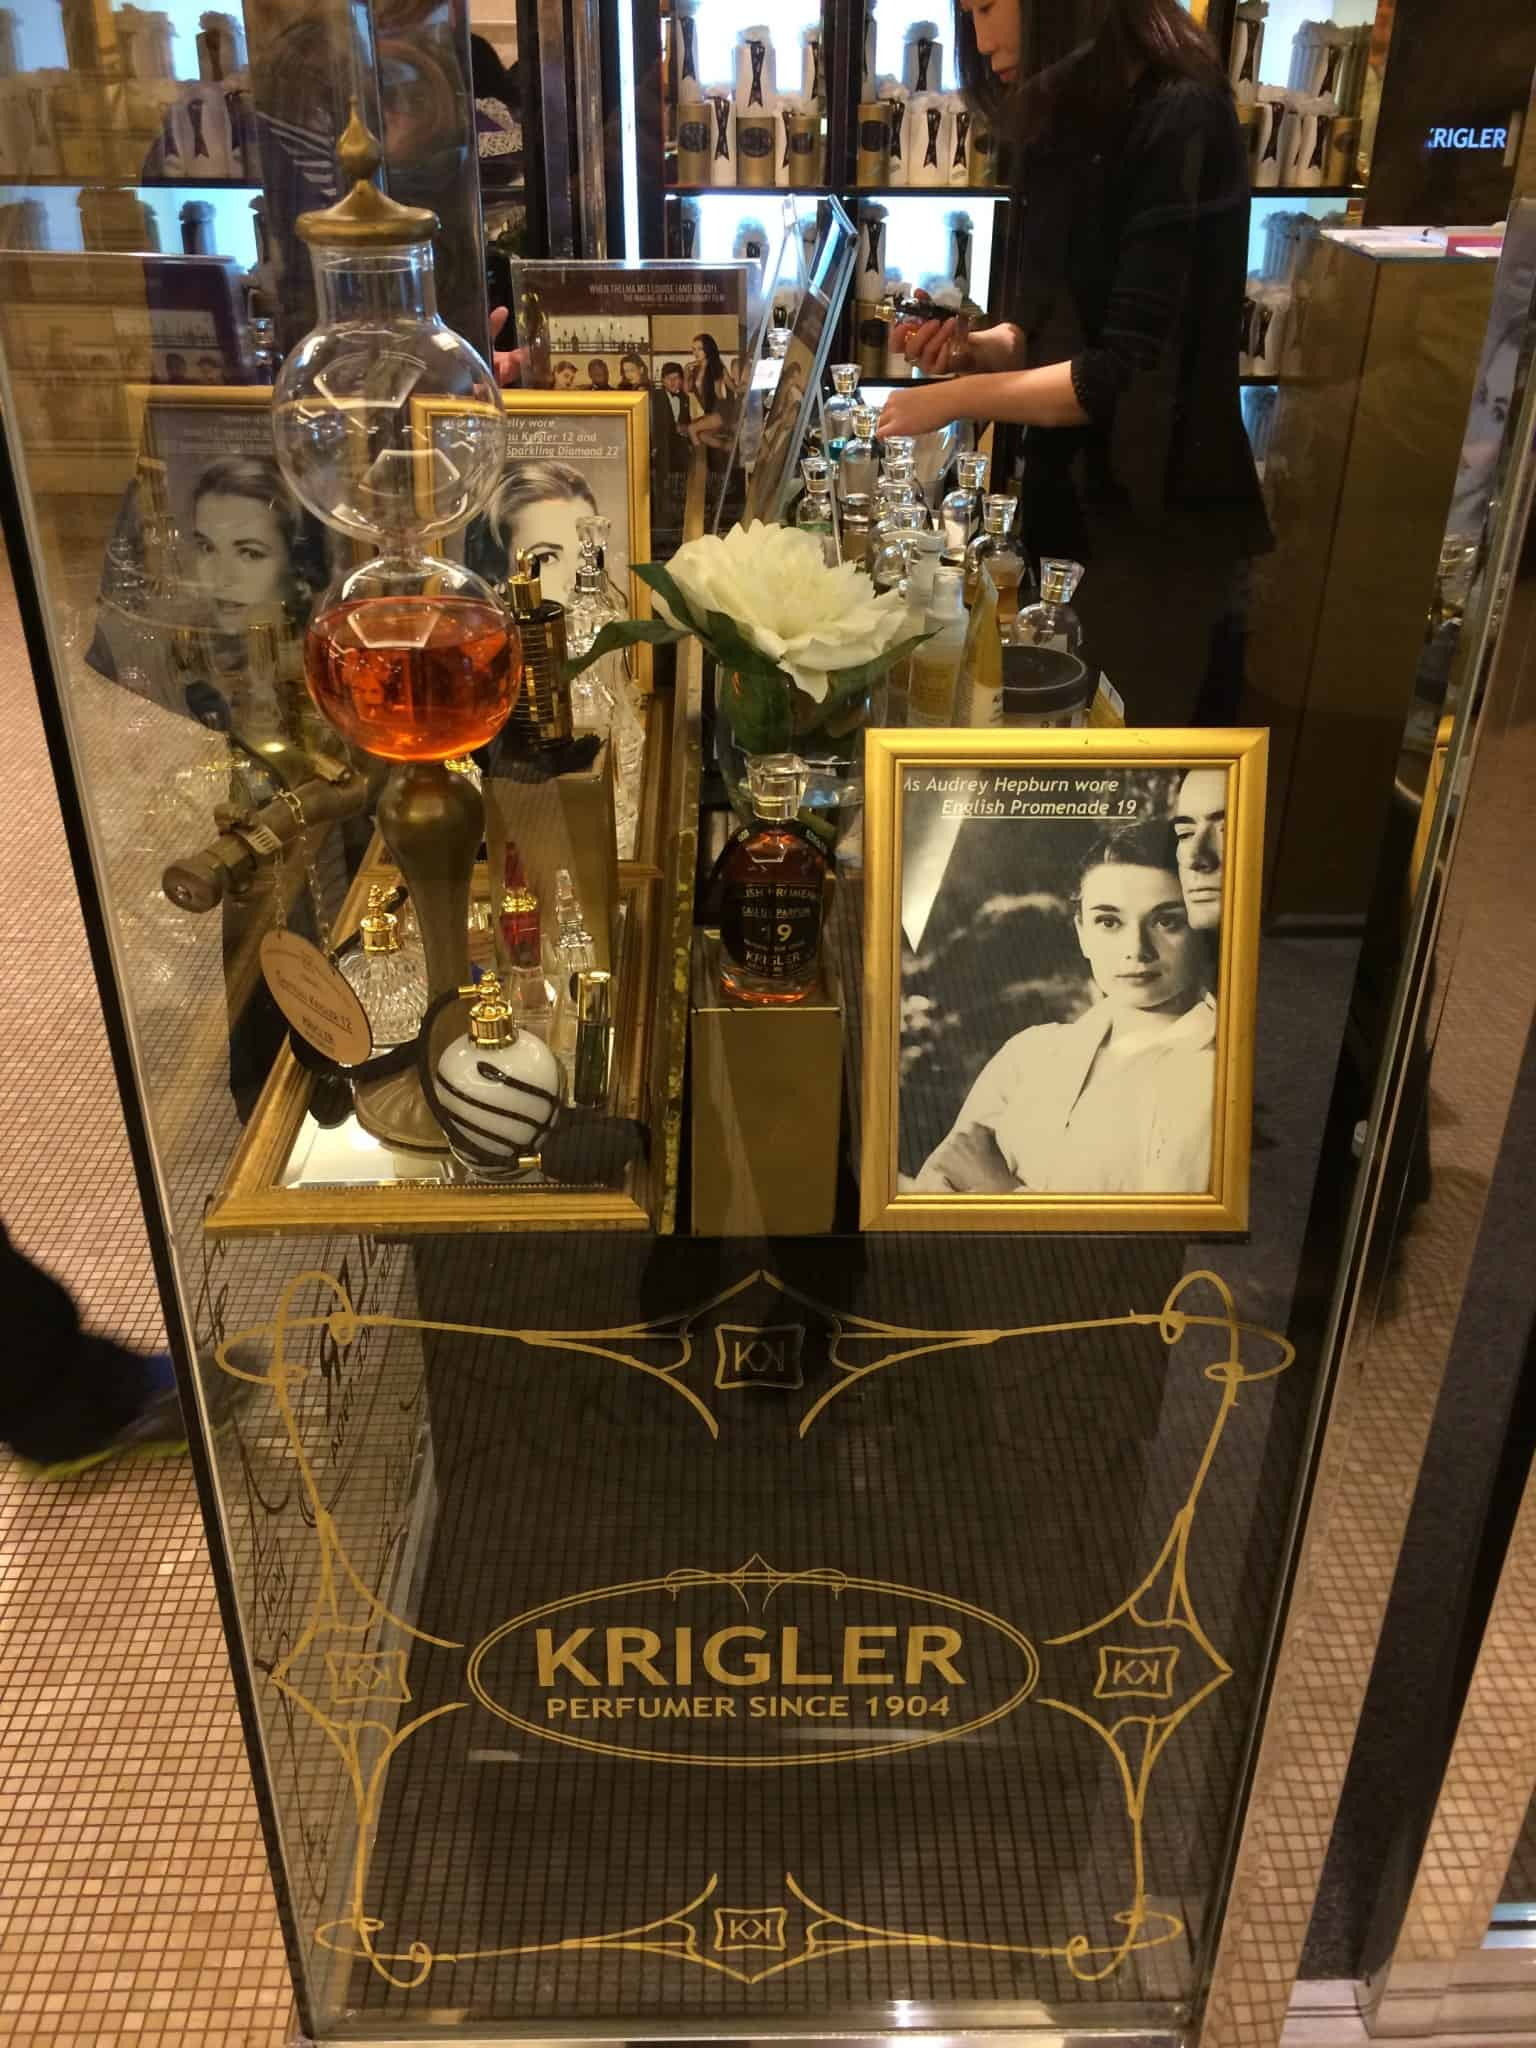 Krigler Perfumer at The Shops at The Plaza